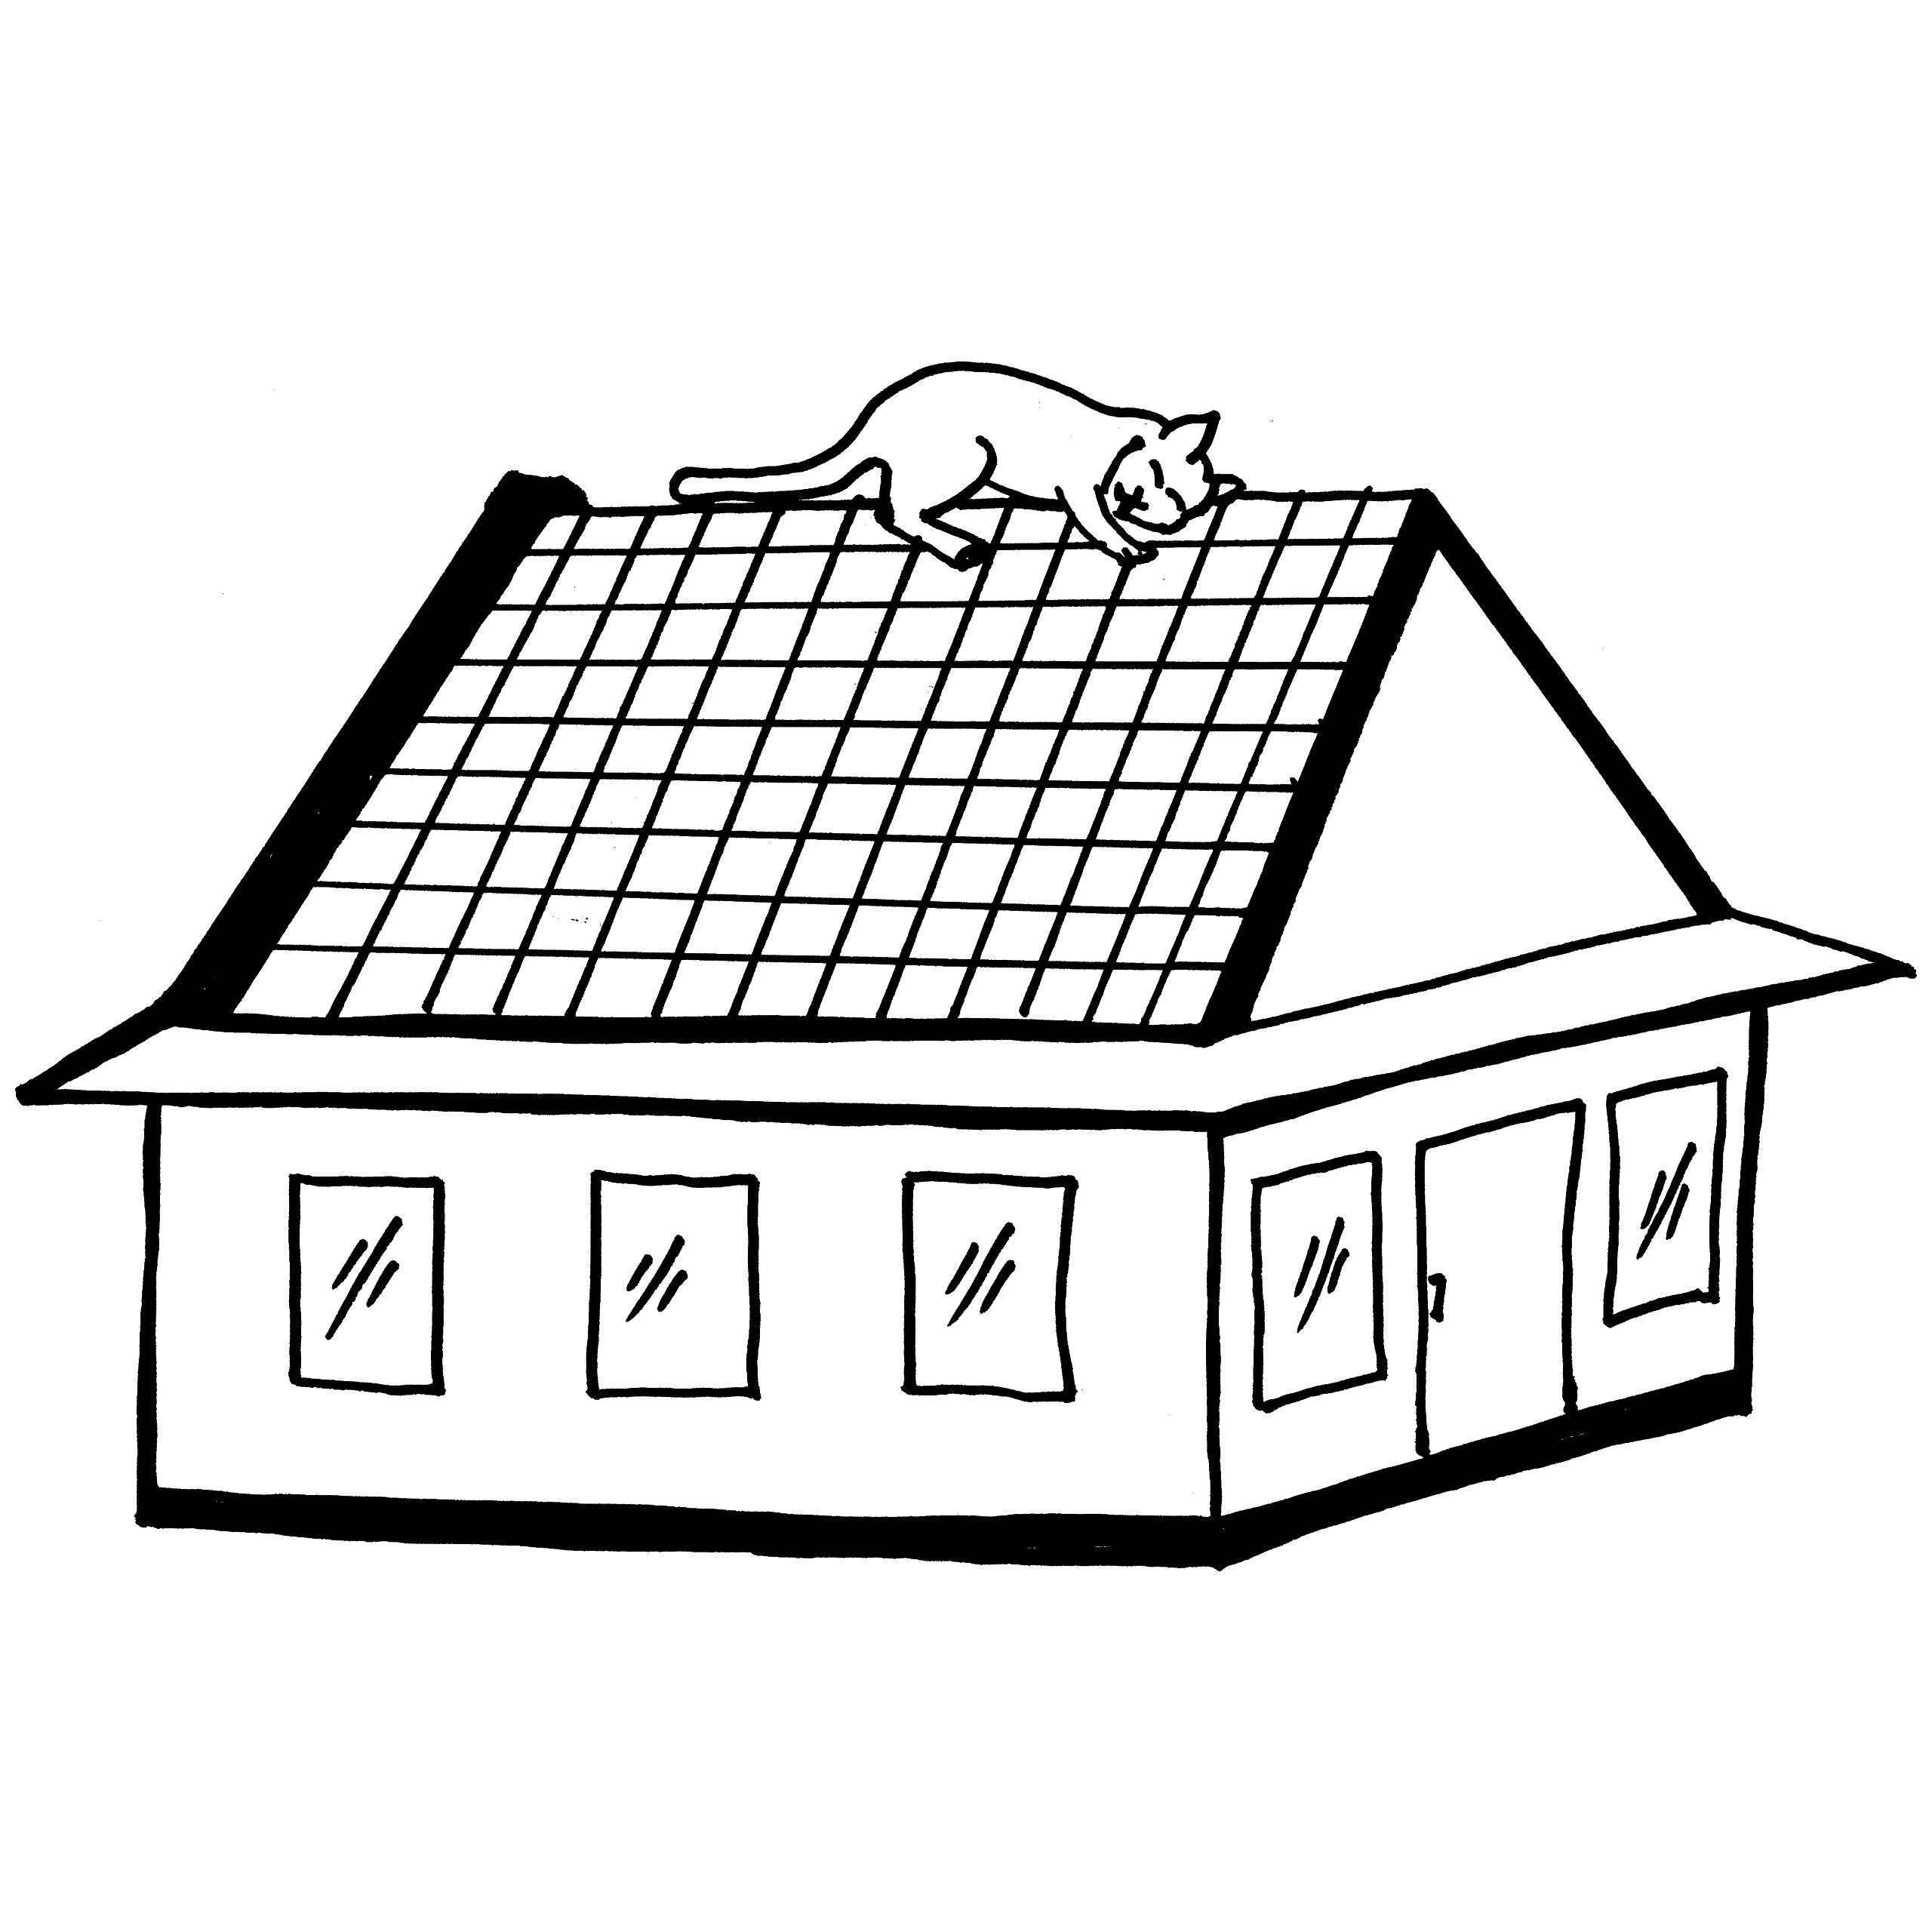 Roof coloring #11, Download drawings